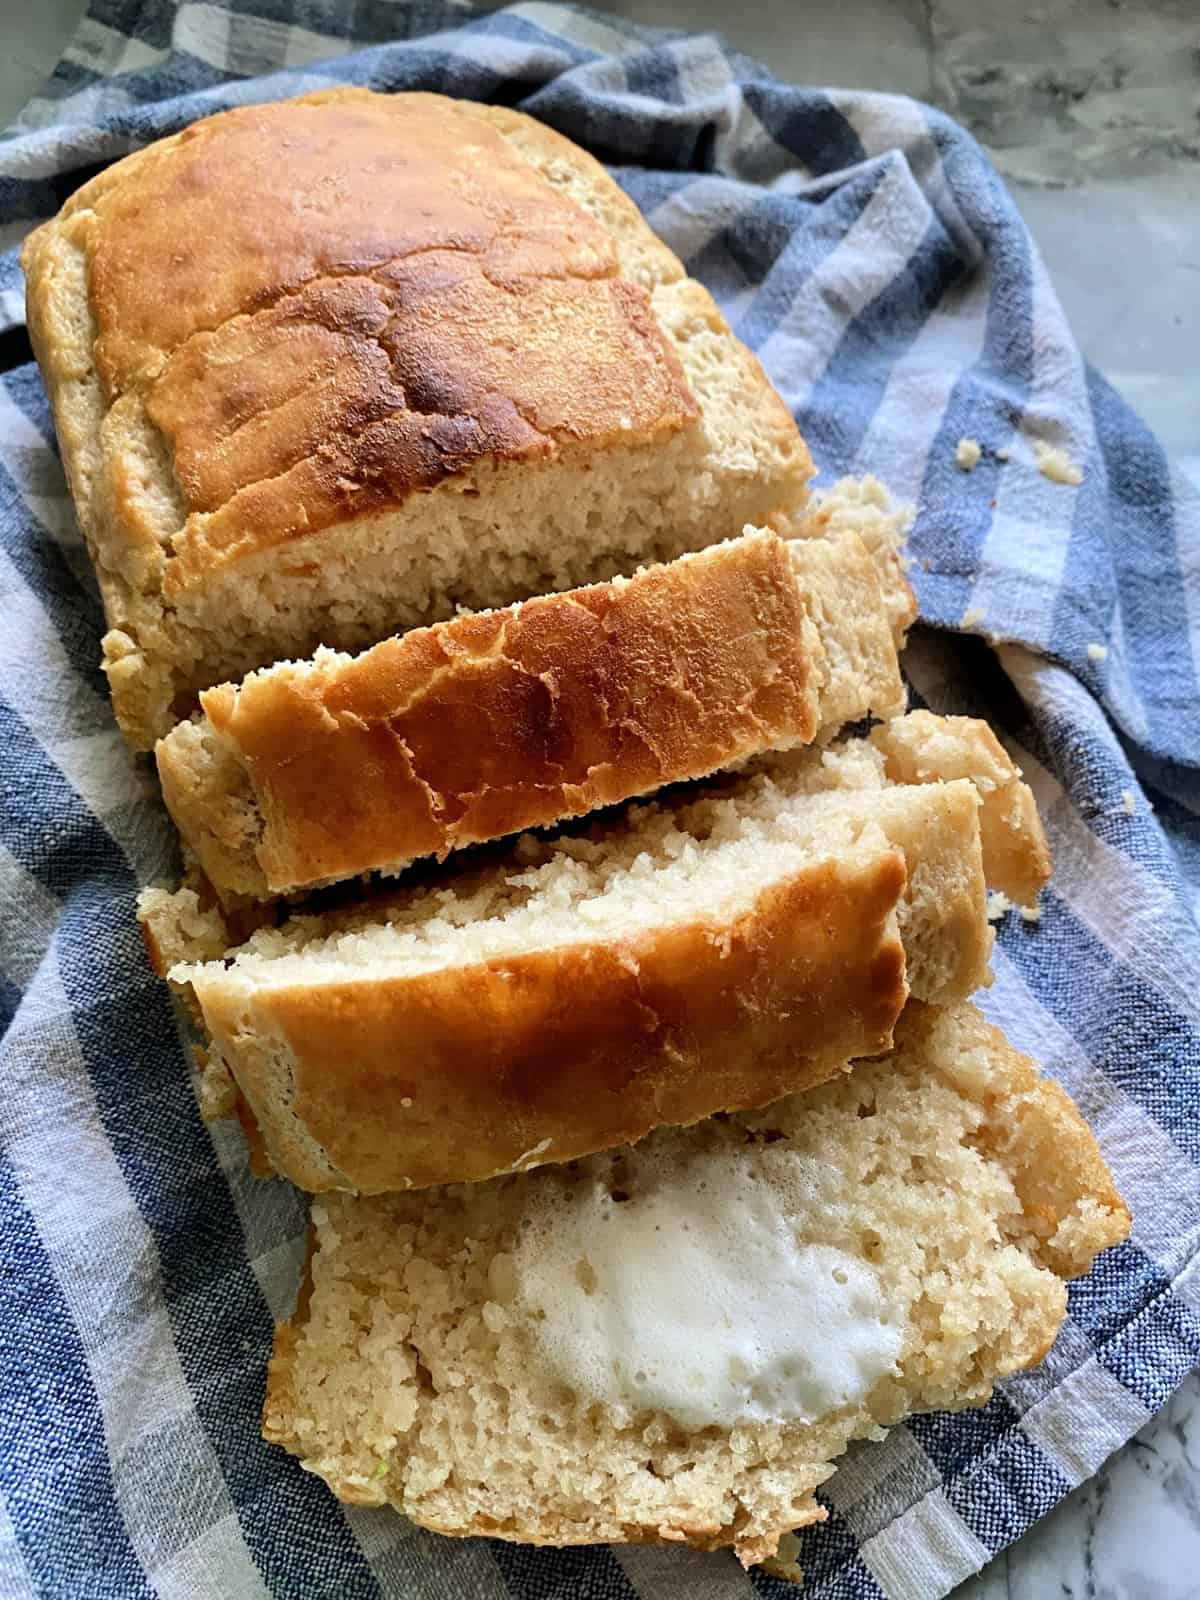 Loaf of beer bread with a few slices cut and falling away from loaf on blue tablecloth.